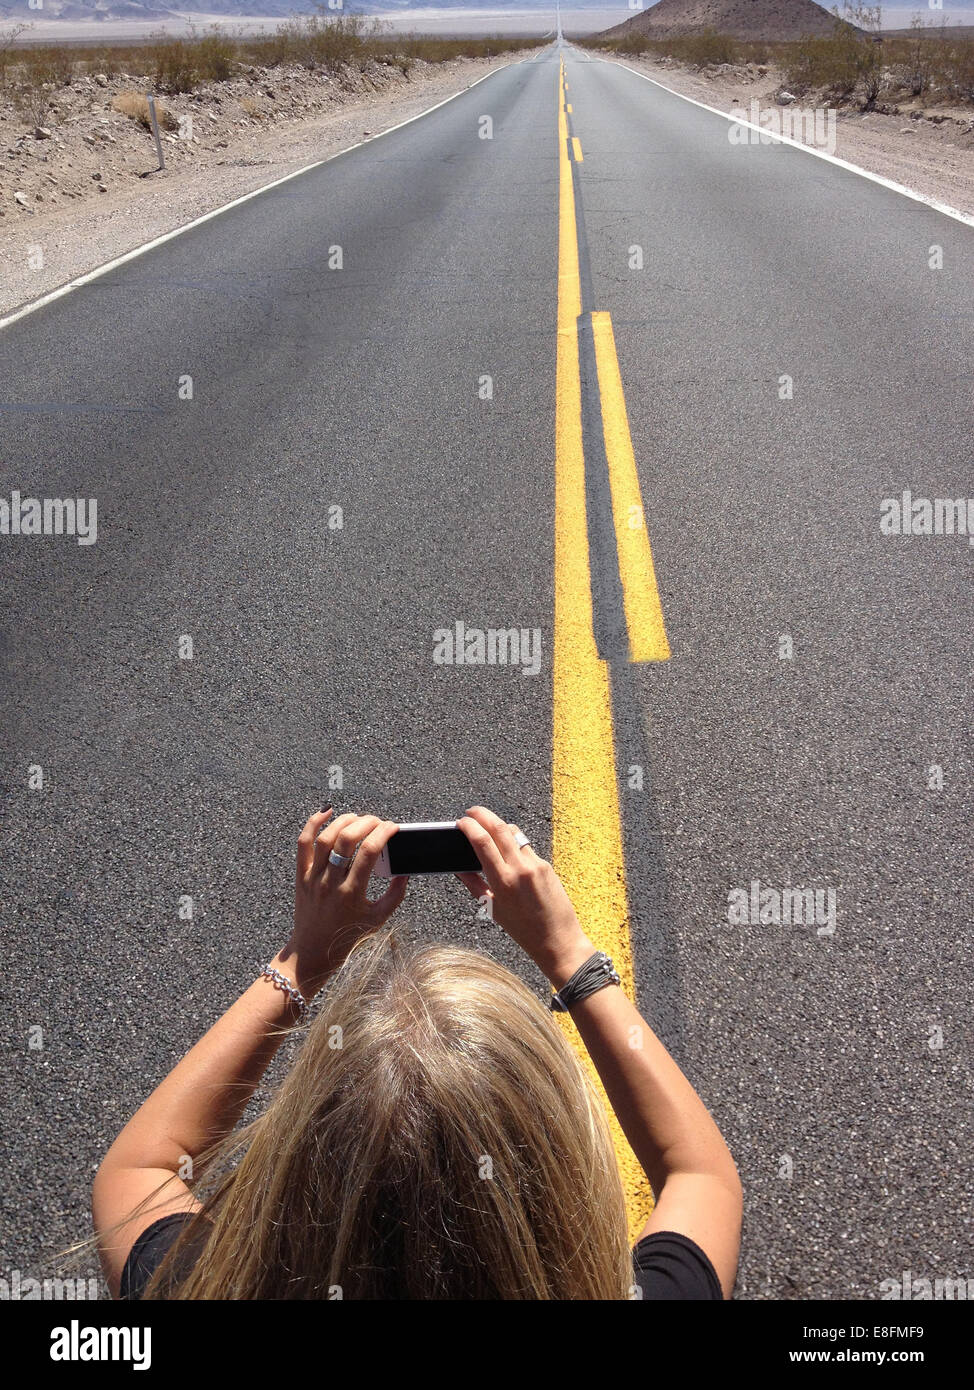 Woman taking photo of infinity road with mobile phone, Nevada, America, USA - Stock Image